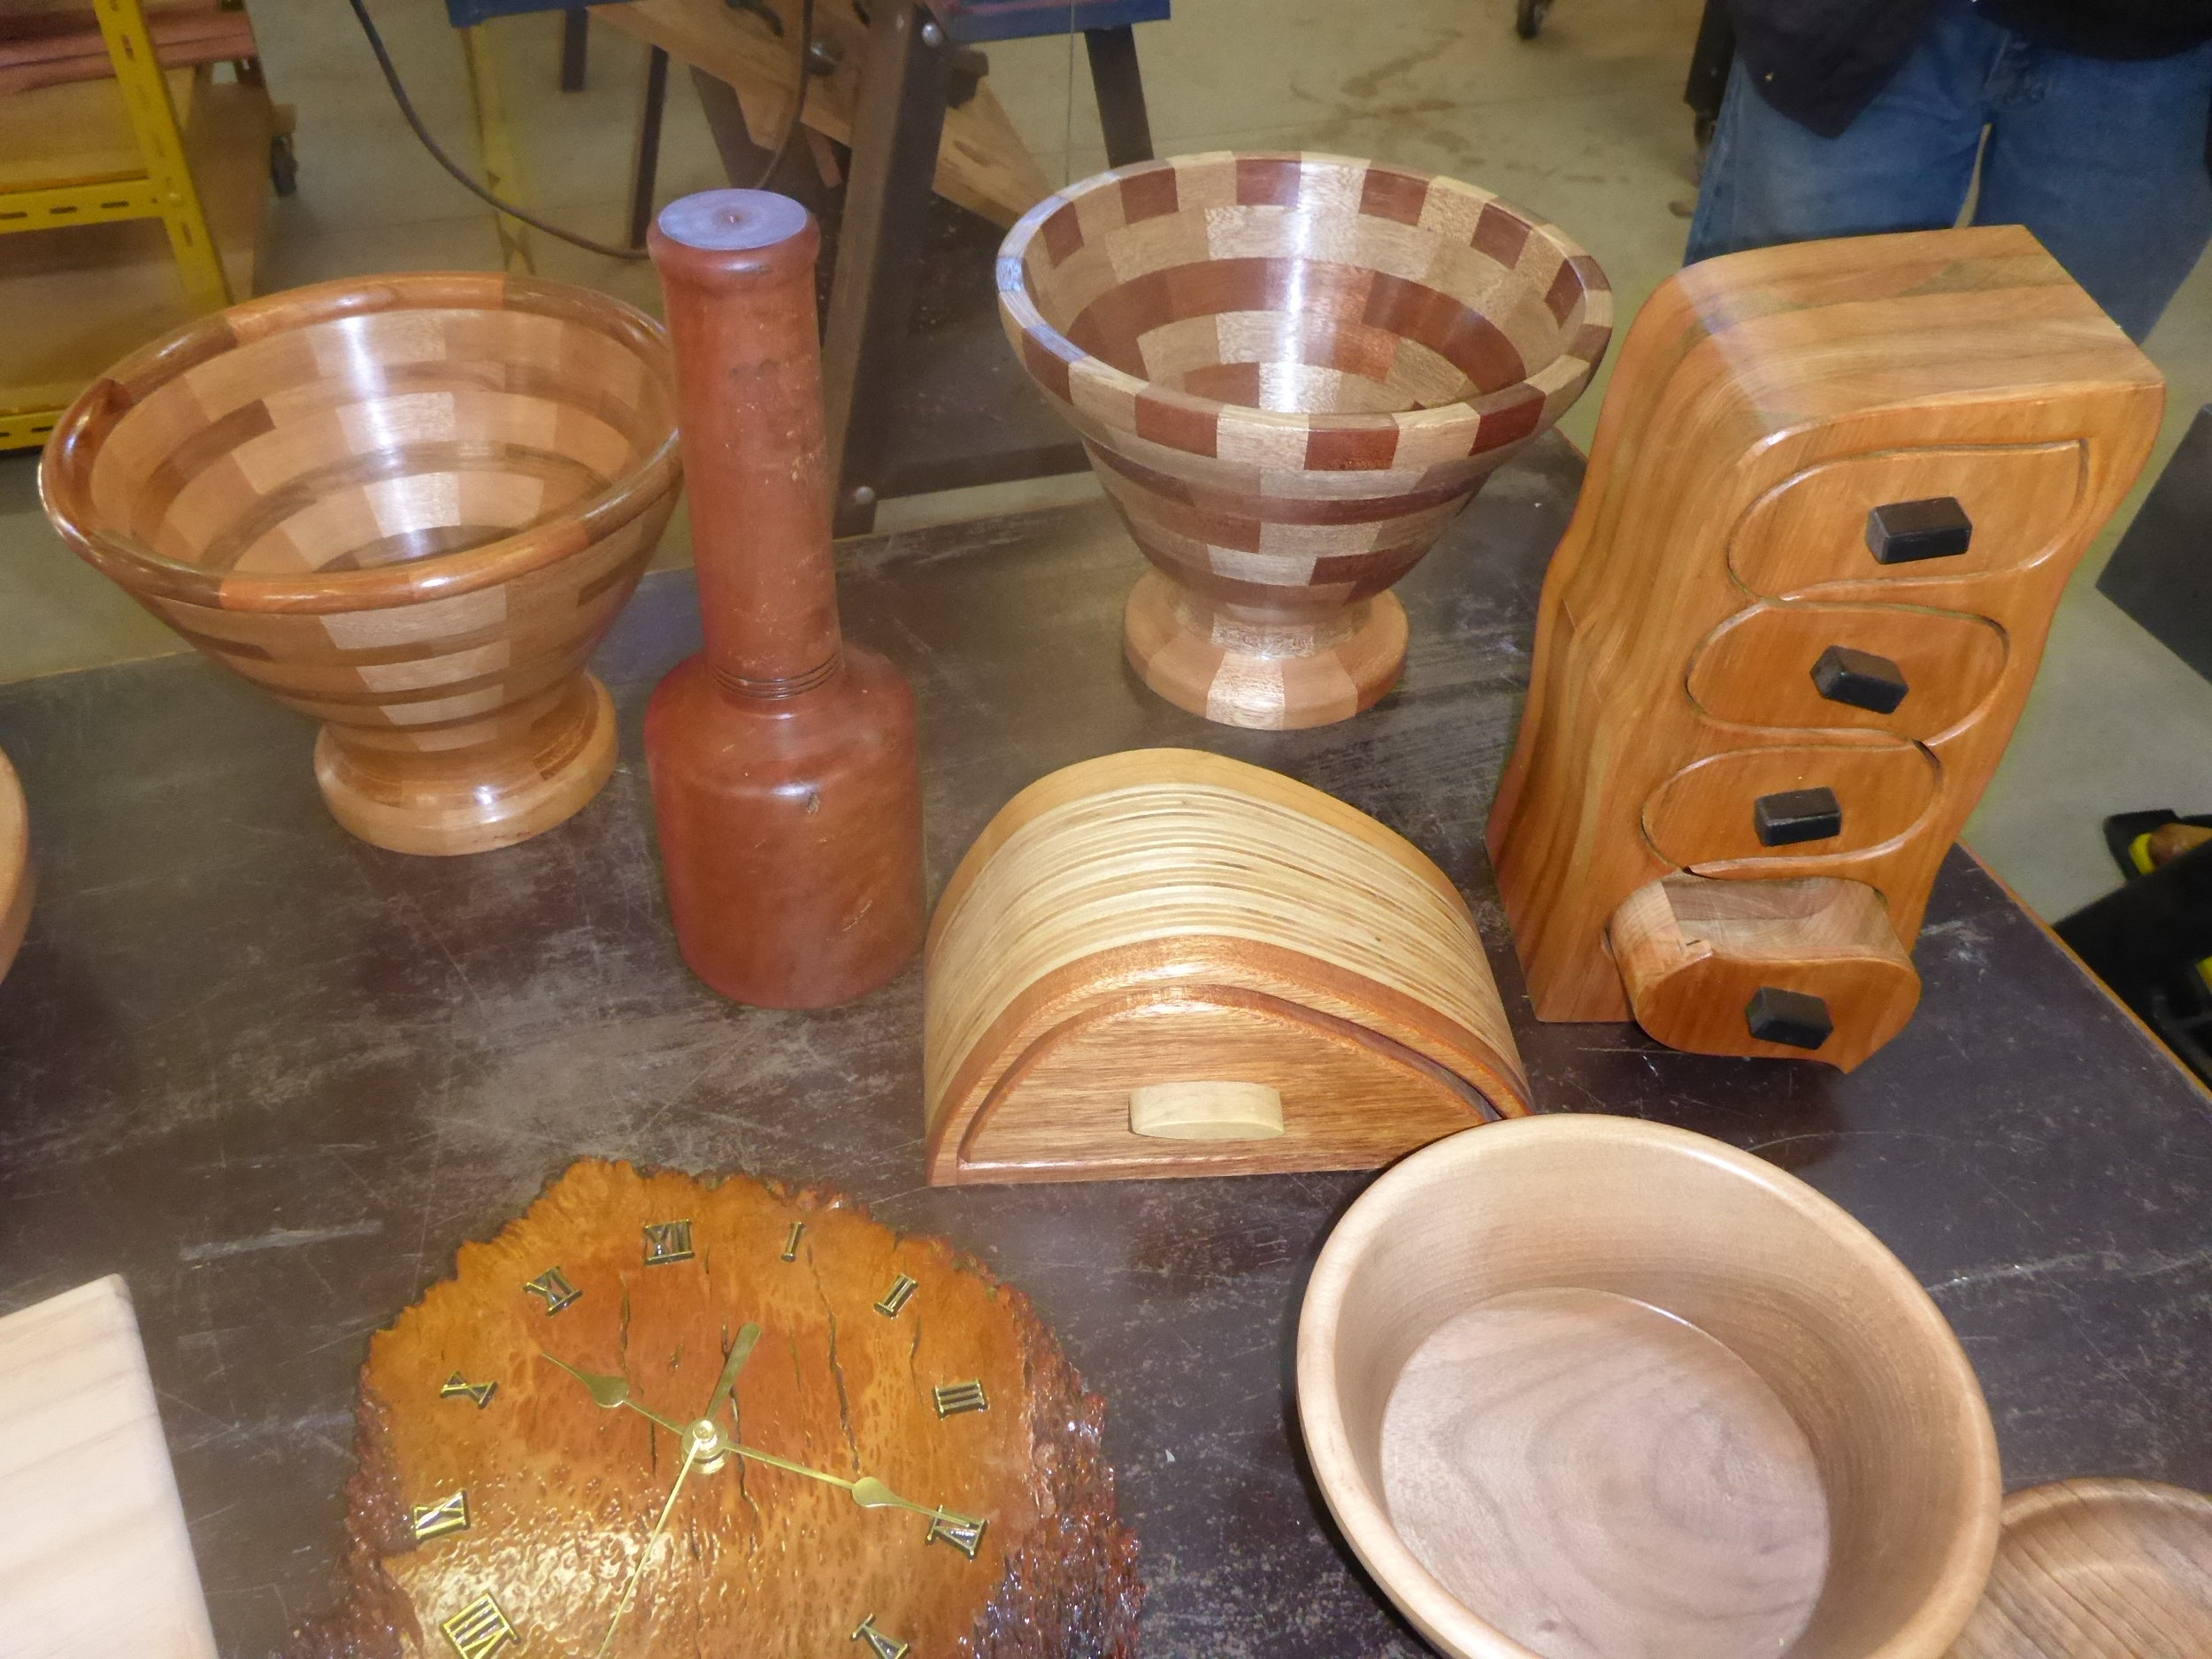 Woodwork from one of our members